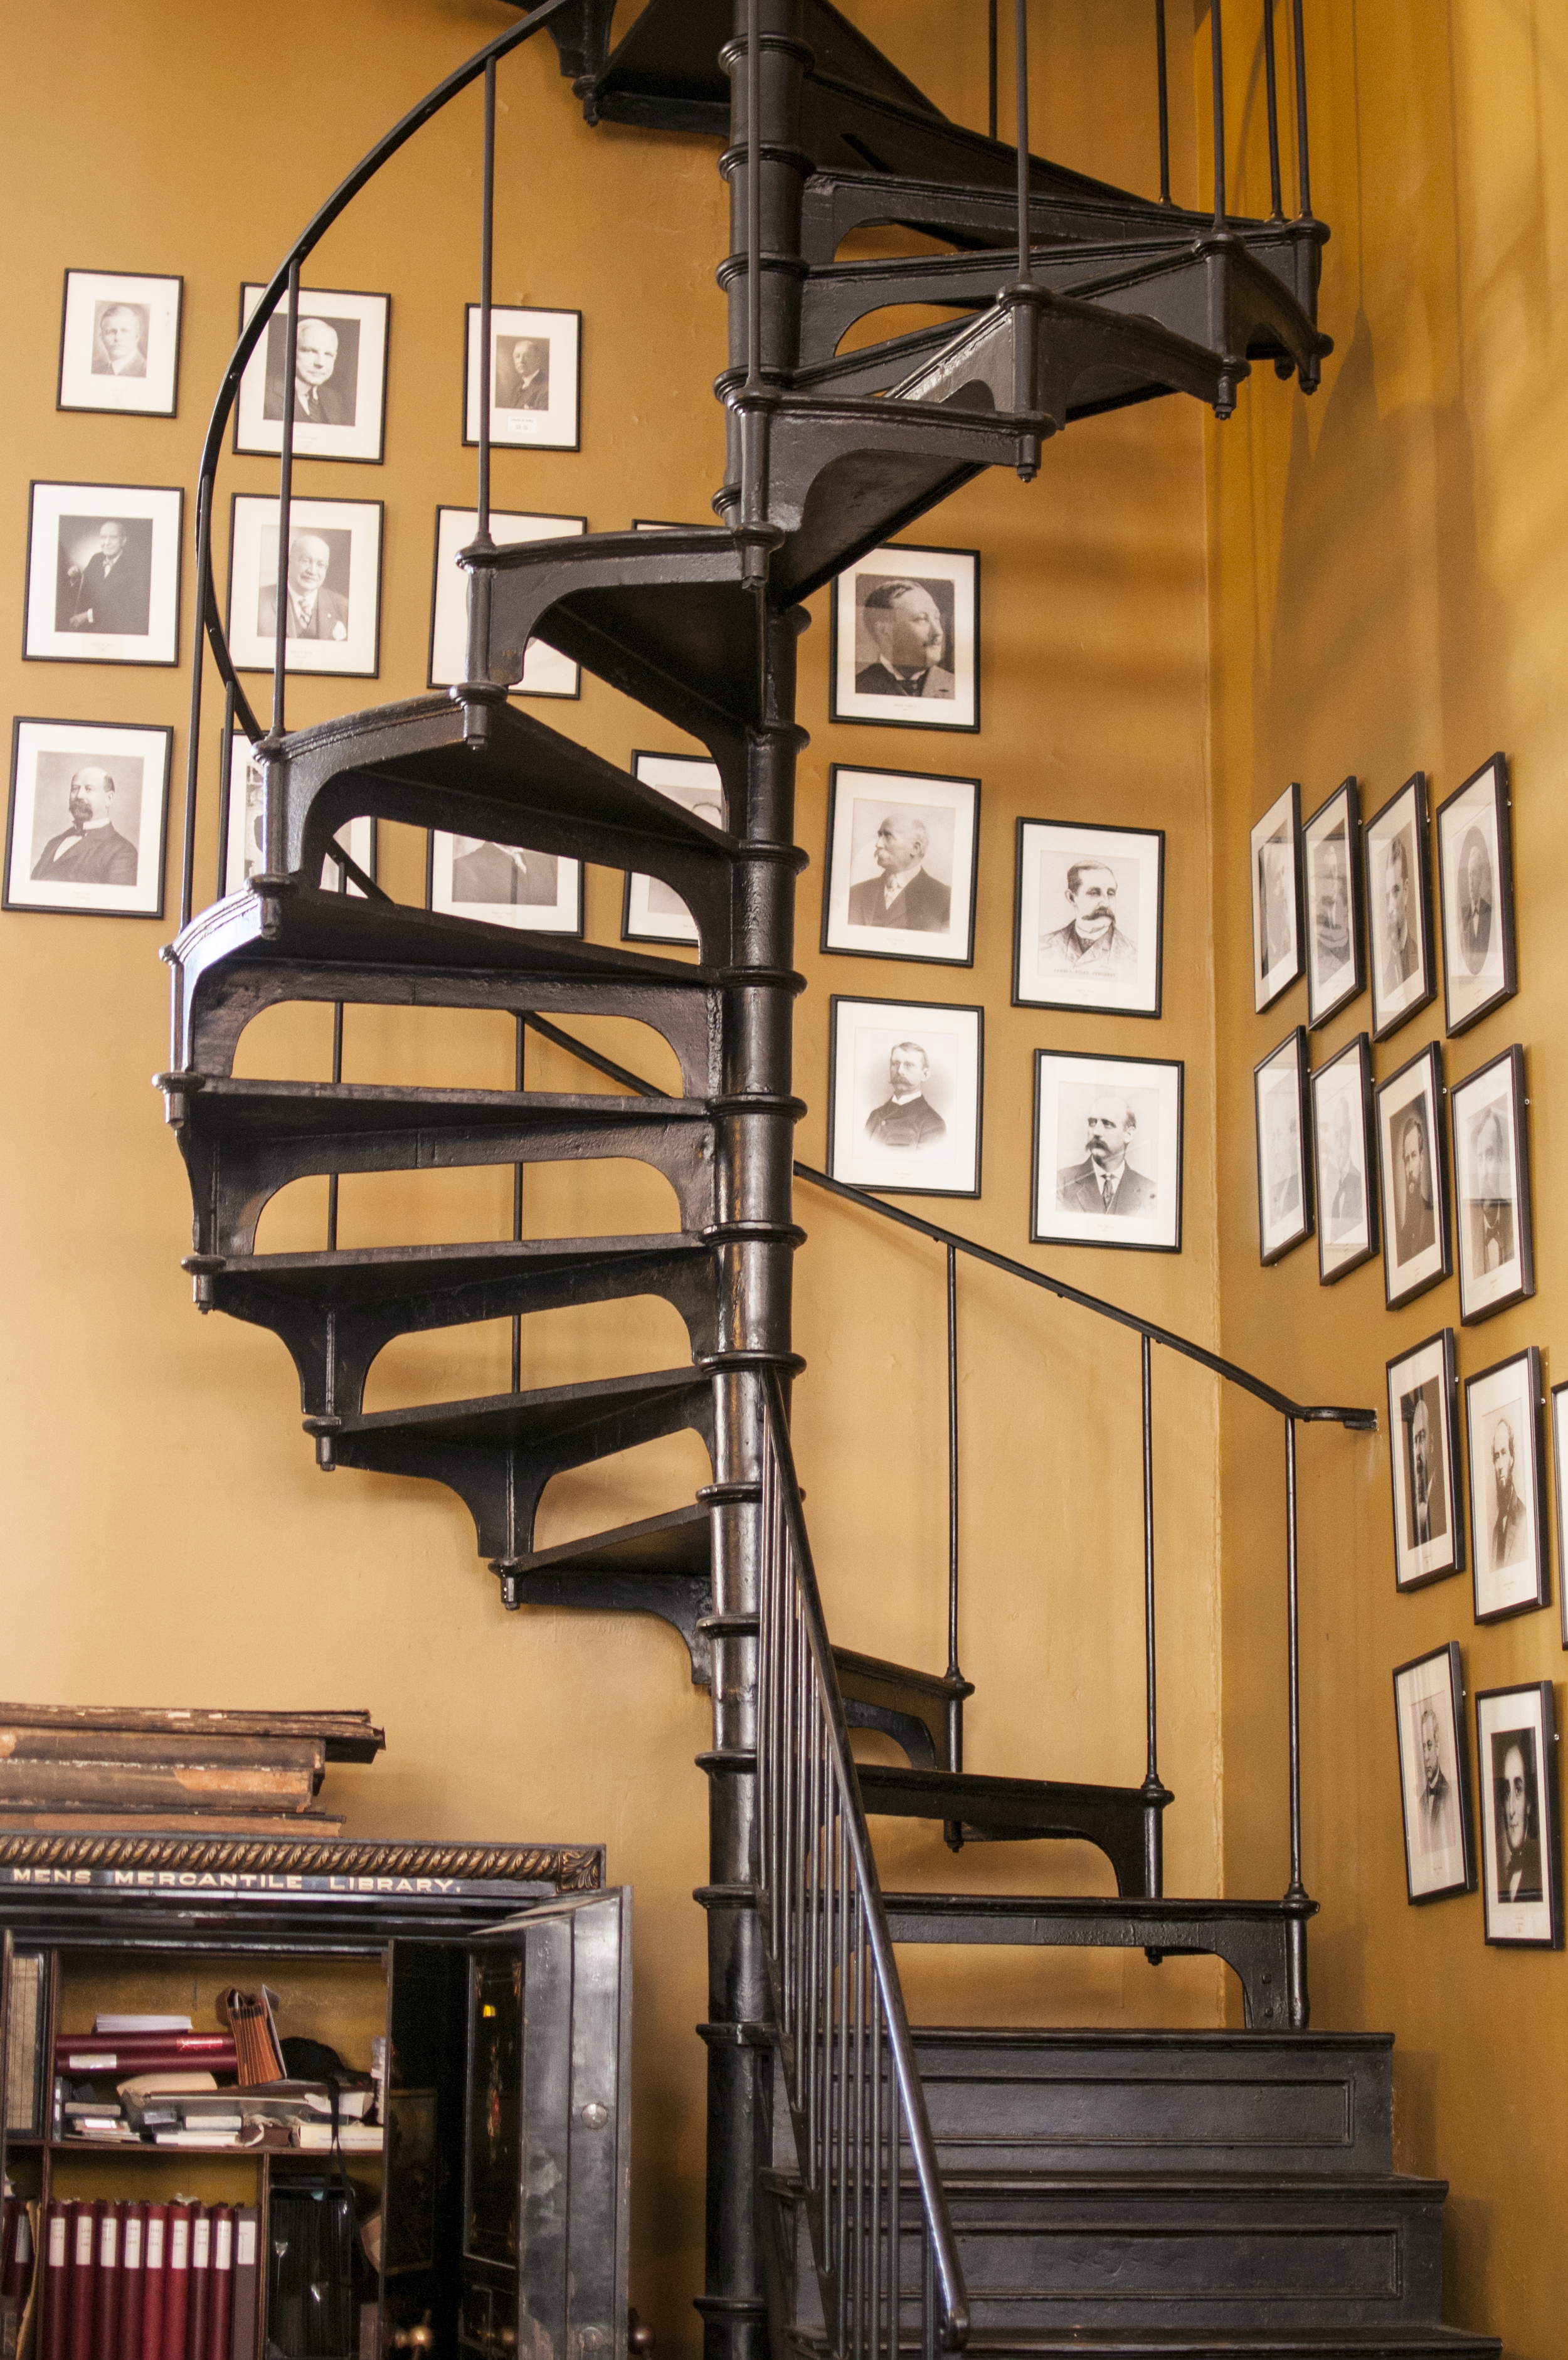 The spiral staircase to the 12th floor